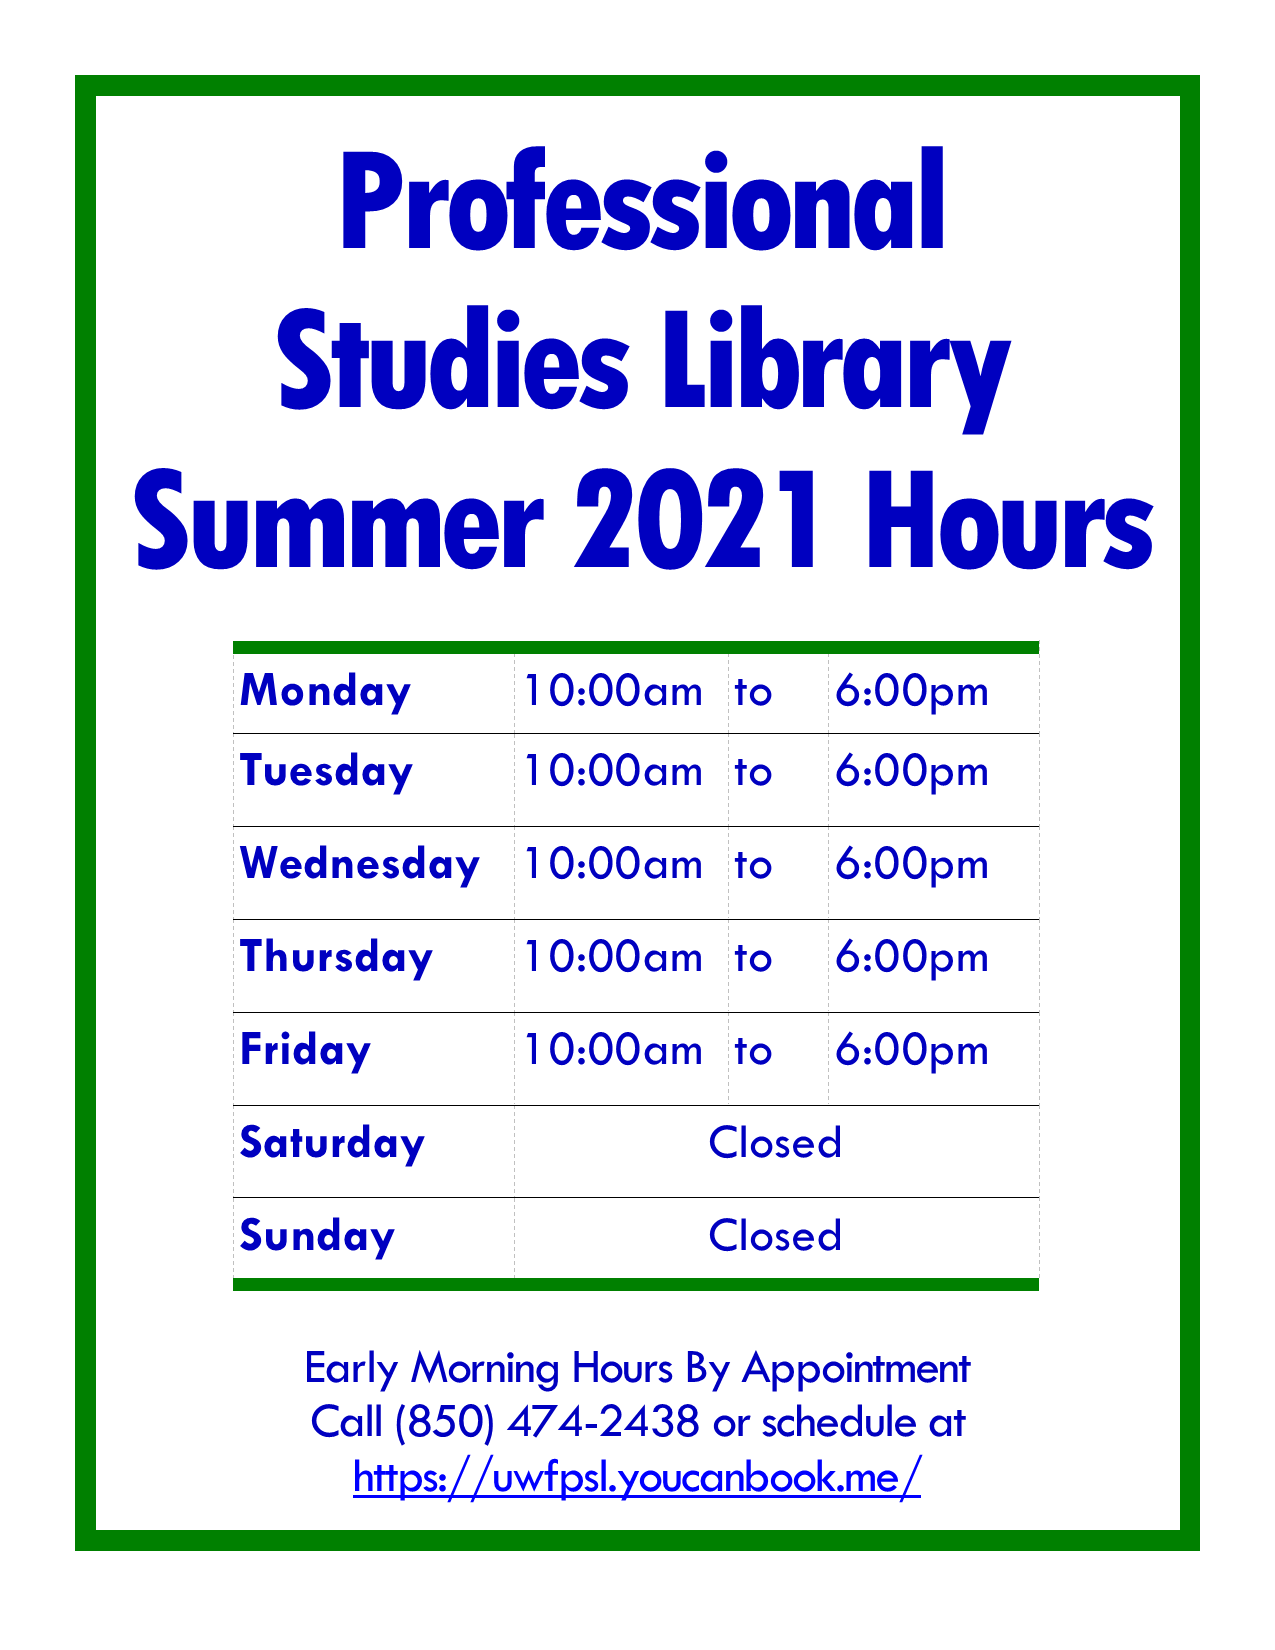 PSL Open Hours, Summer 2021 - Monday - Friday, 10:00 am - 6:00 pm. Closed Saturday and Sunday.